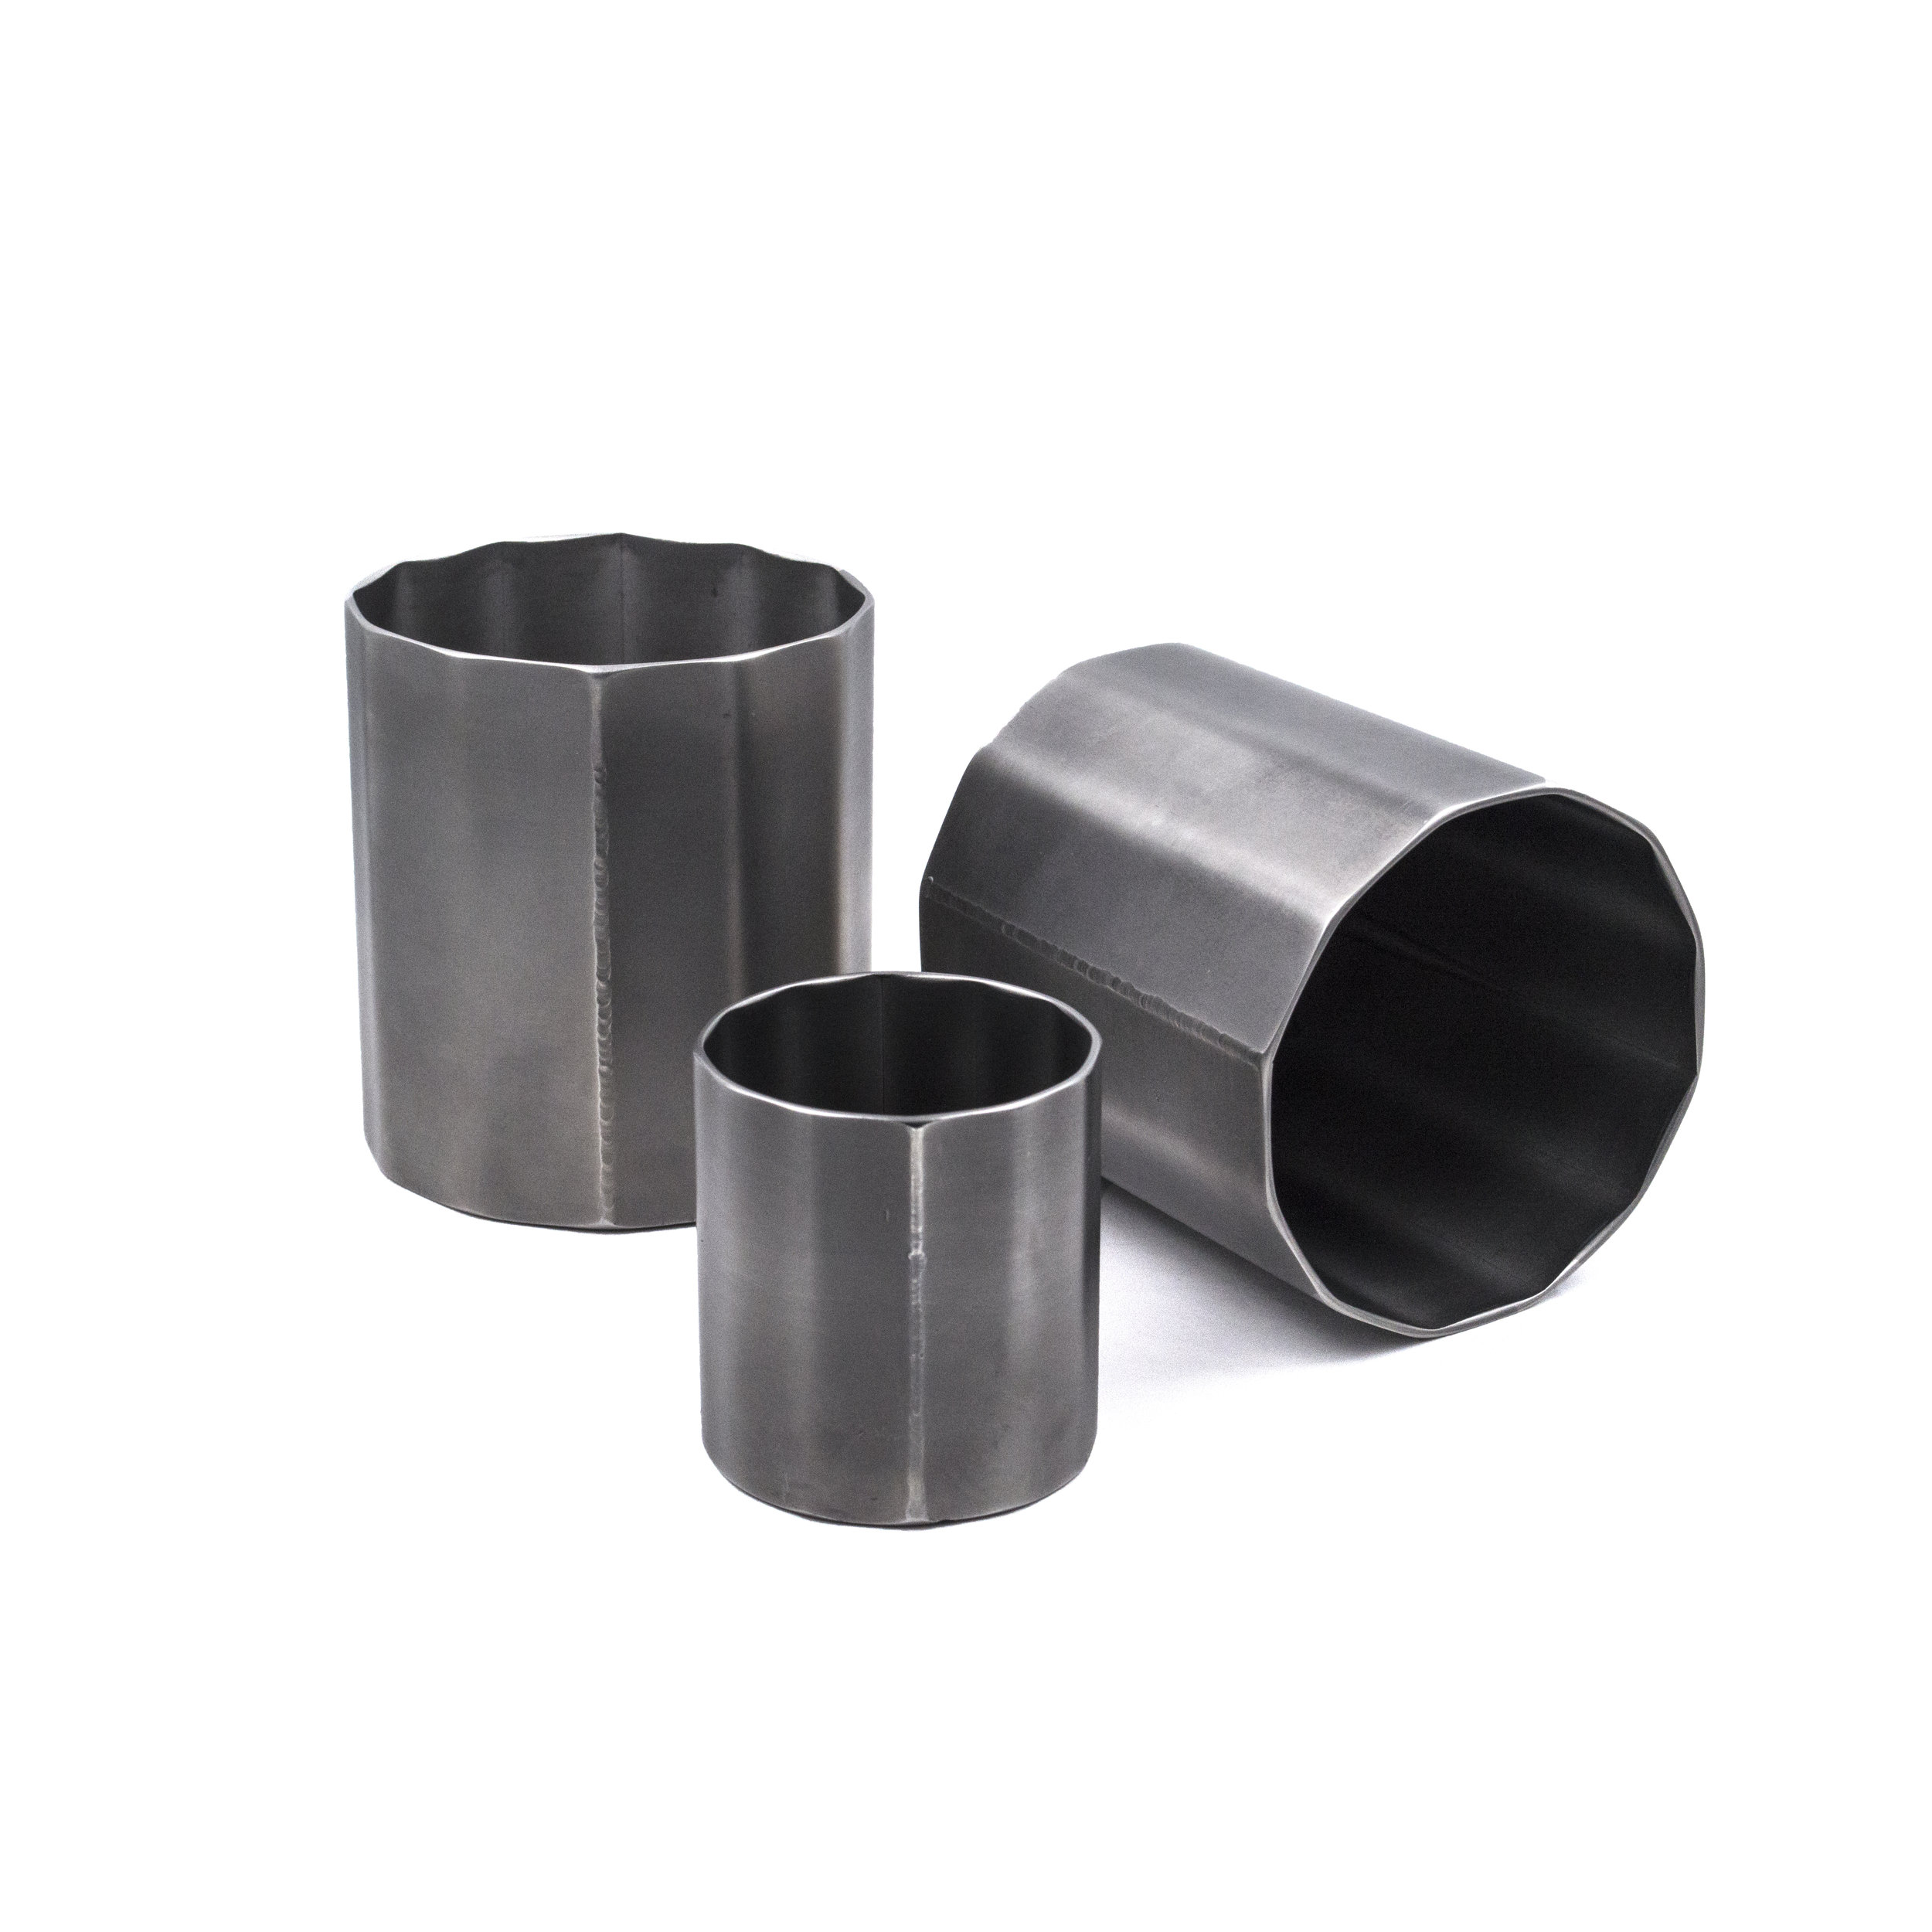 Stainless Steel Cocktail Tumblers Standard Tumblers: 3.25 x 3 x 3 in (10 fl oz.) Tall Tumblers: 4.75 x 2 x 2 in (10 fl oz.) Shot Glasses: 2 x 1.75 x 1.75 in (2 fl oz.)